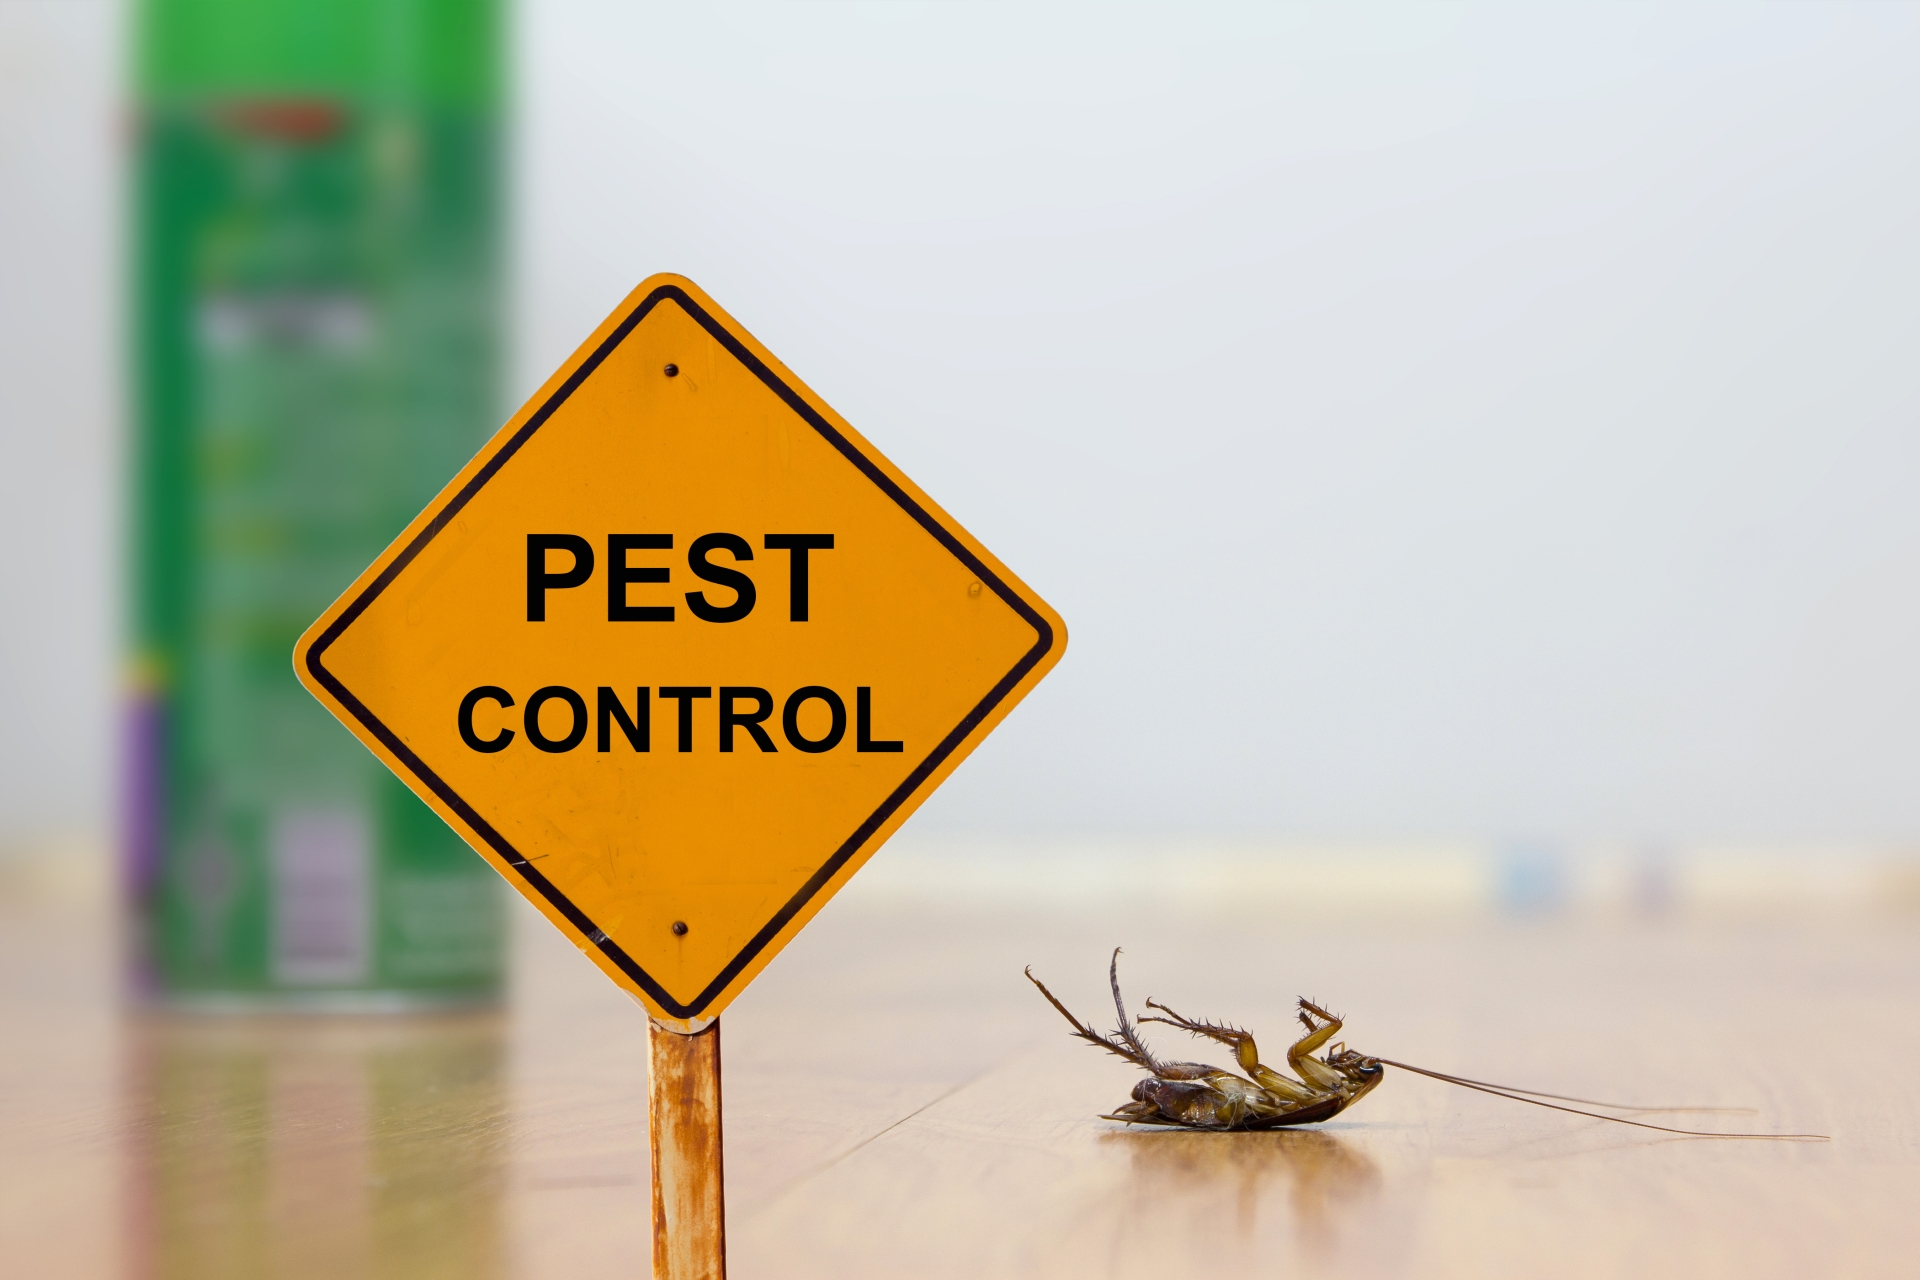 24 Hour Pest Control, Pest Control in Tolworth, Berrylands, KT5. Call Now 020 8166 9746